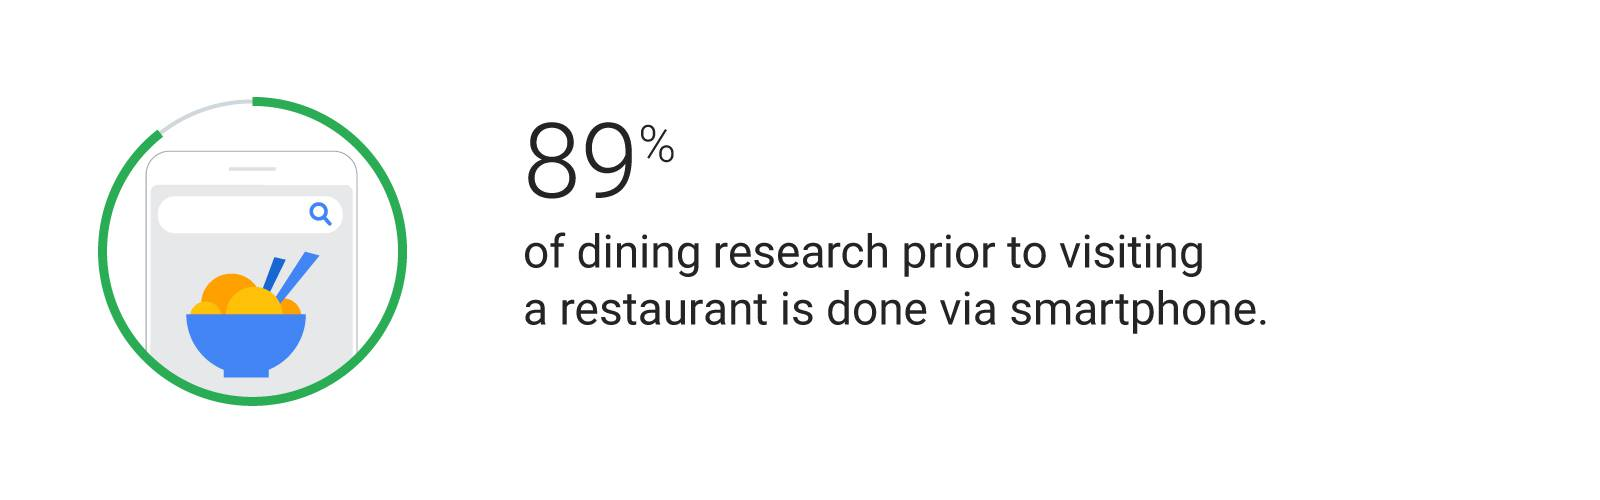 89% of dining research prior to visiting a restaurant is done via smartphone.